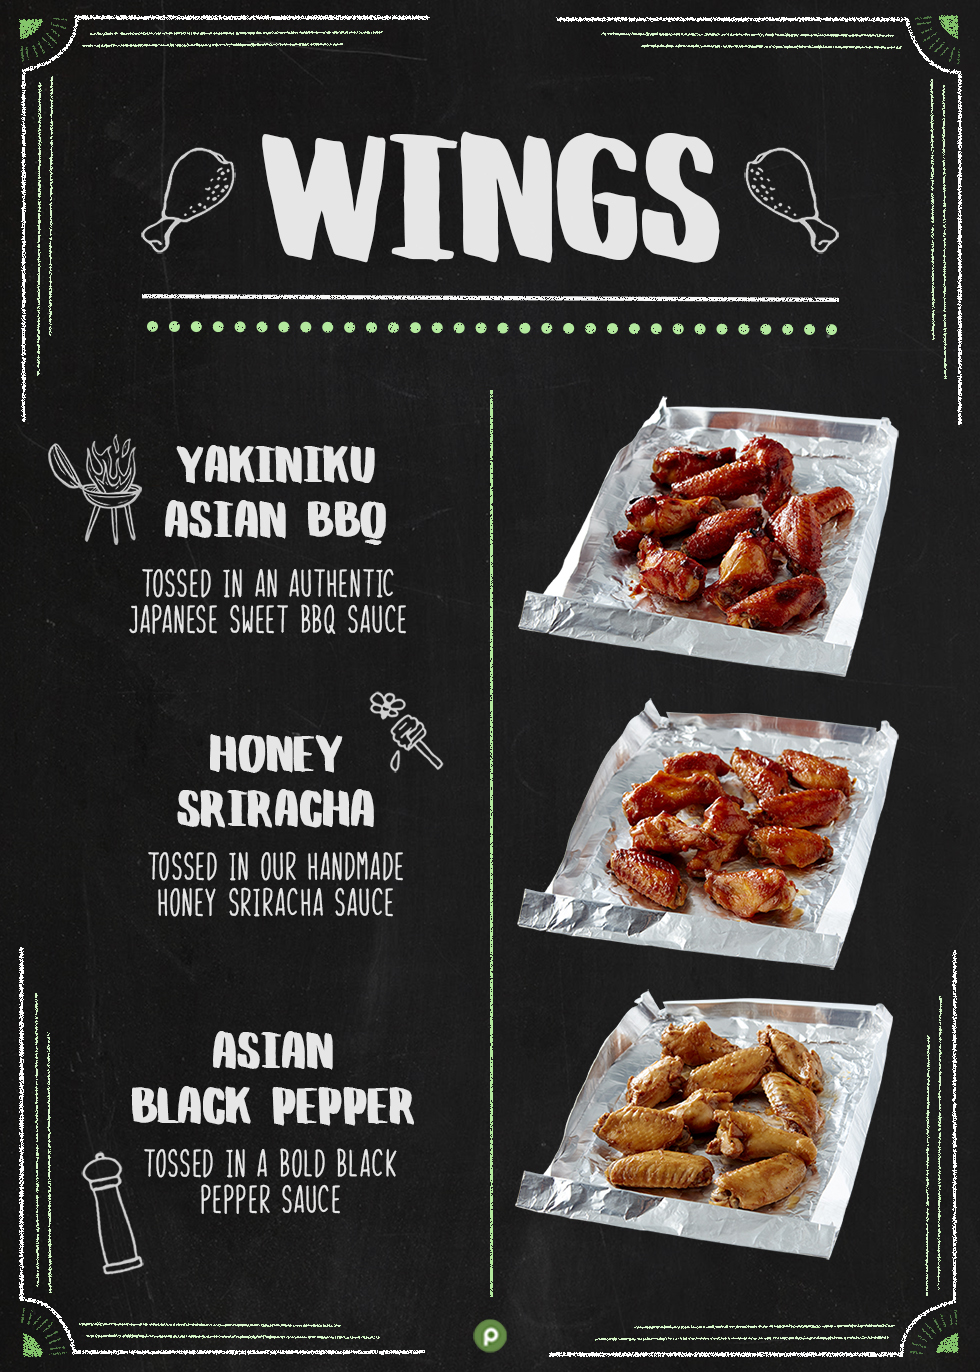 04_MB_ReadyCook_Wings